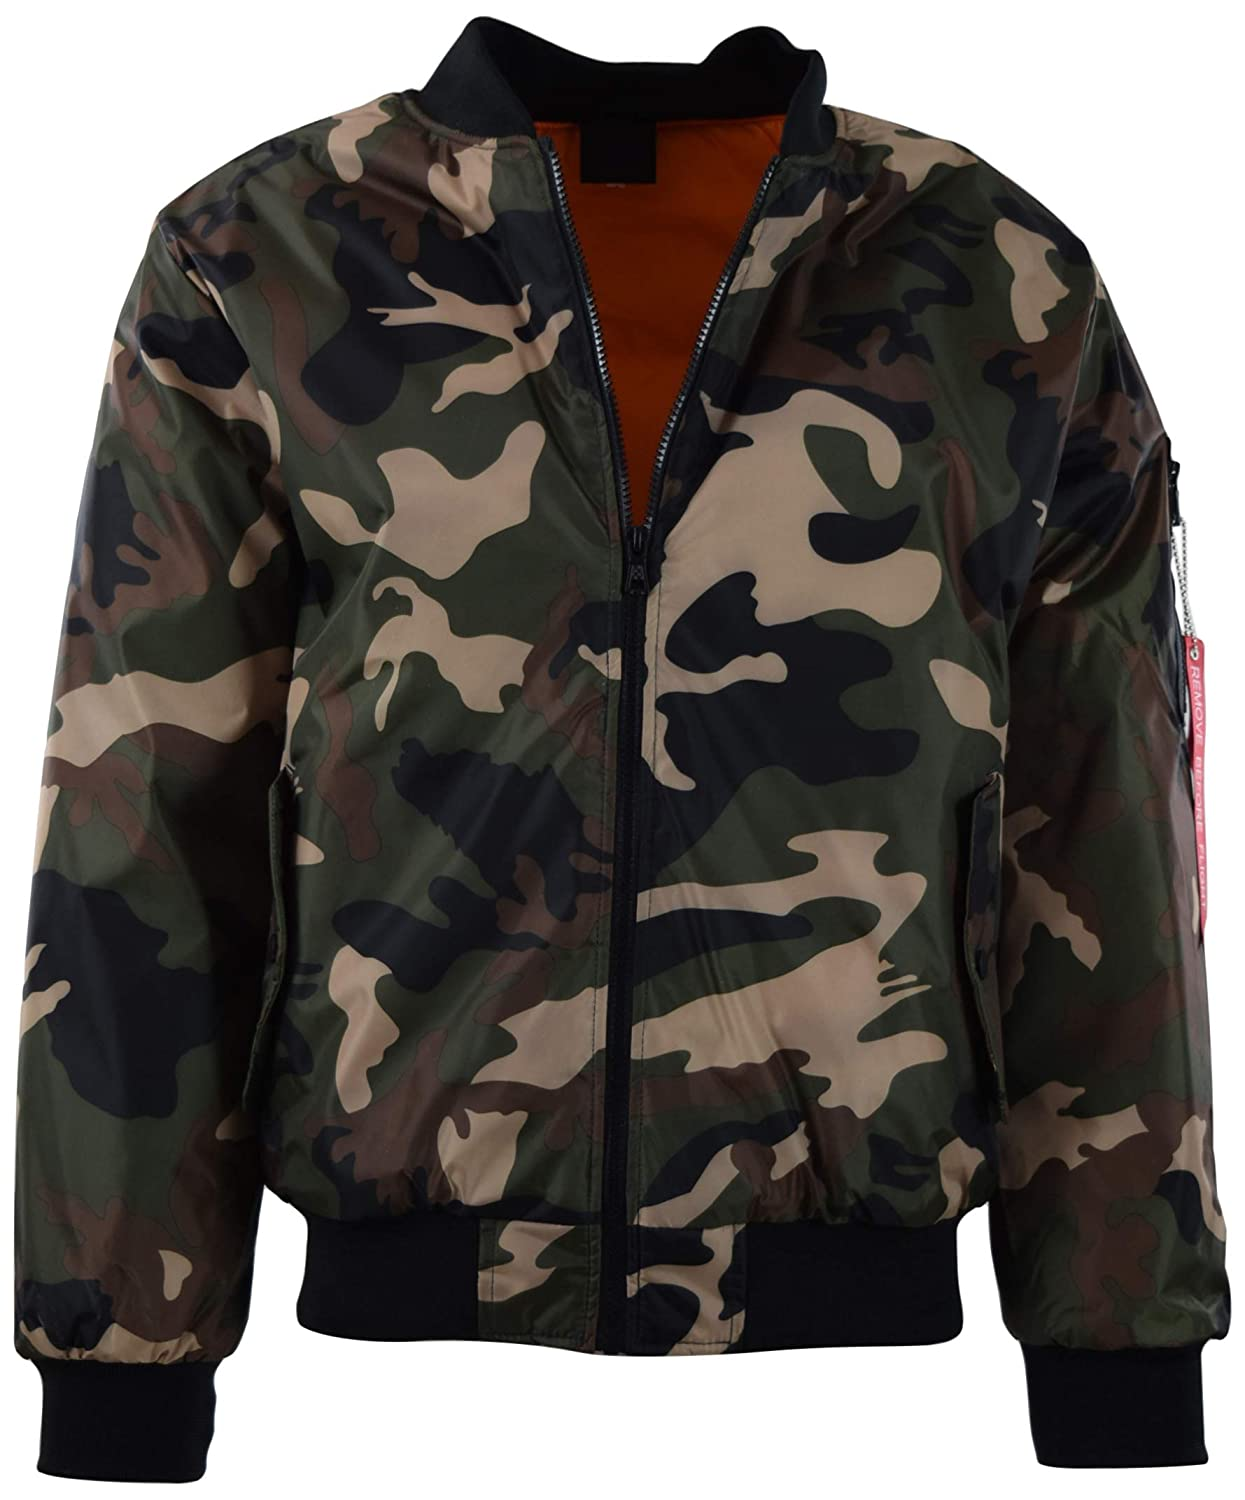 Mens Premium Quality Bomber Flight Jacket